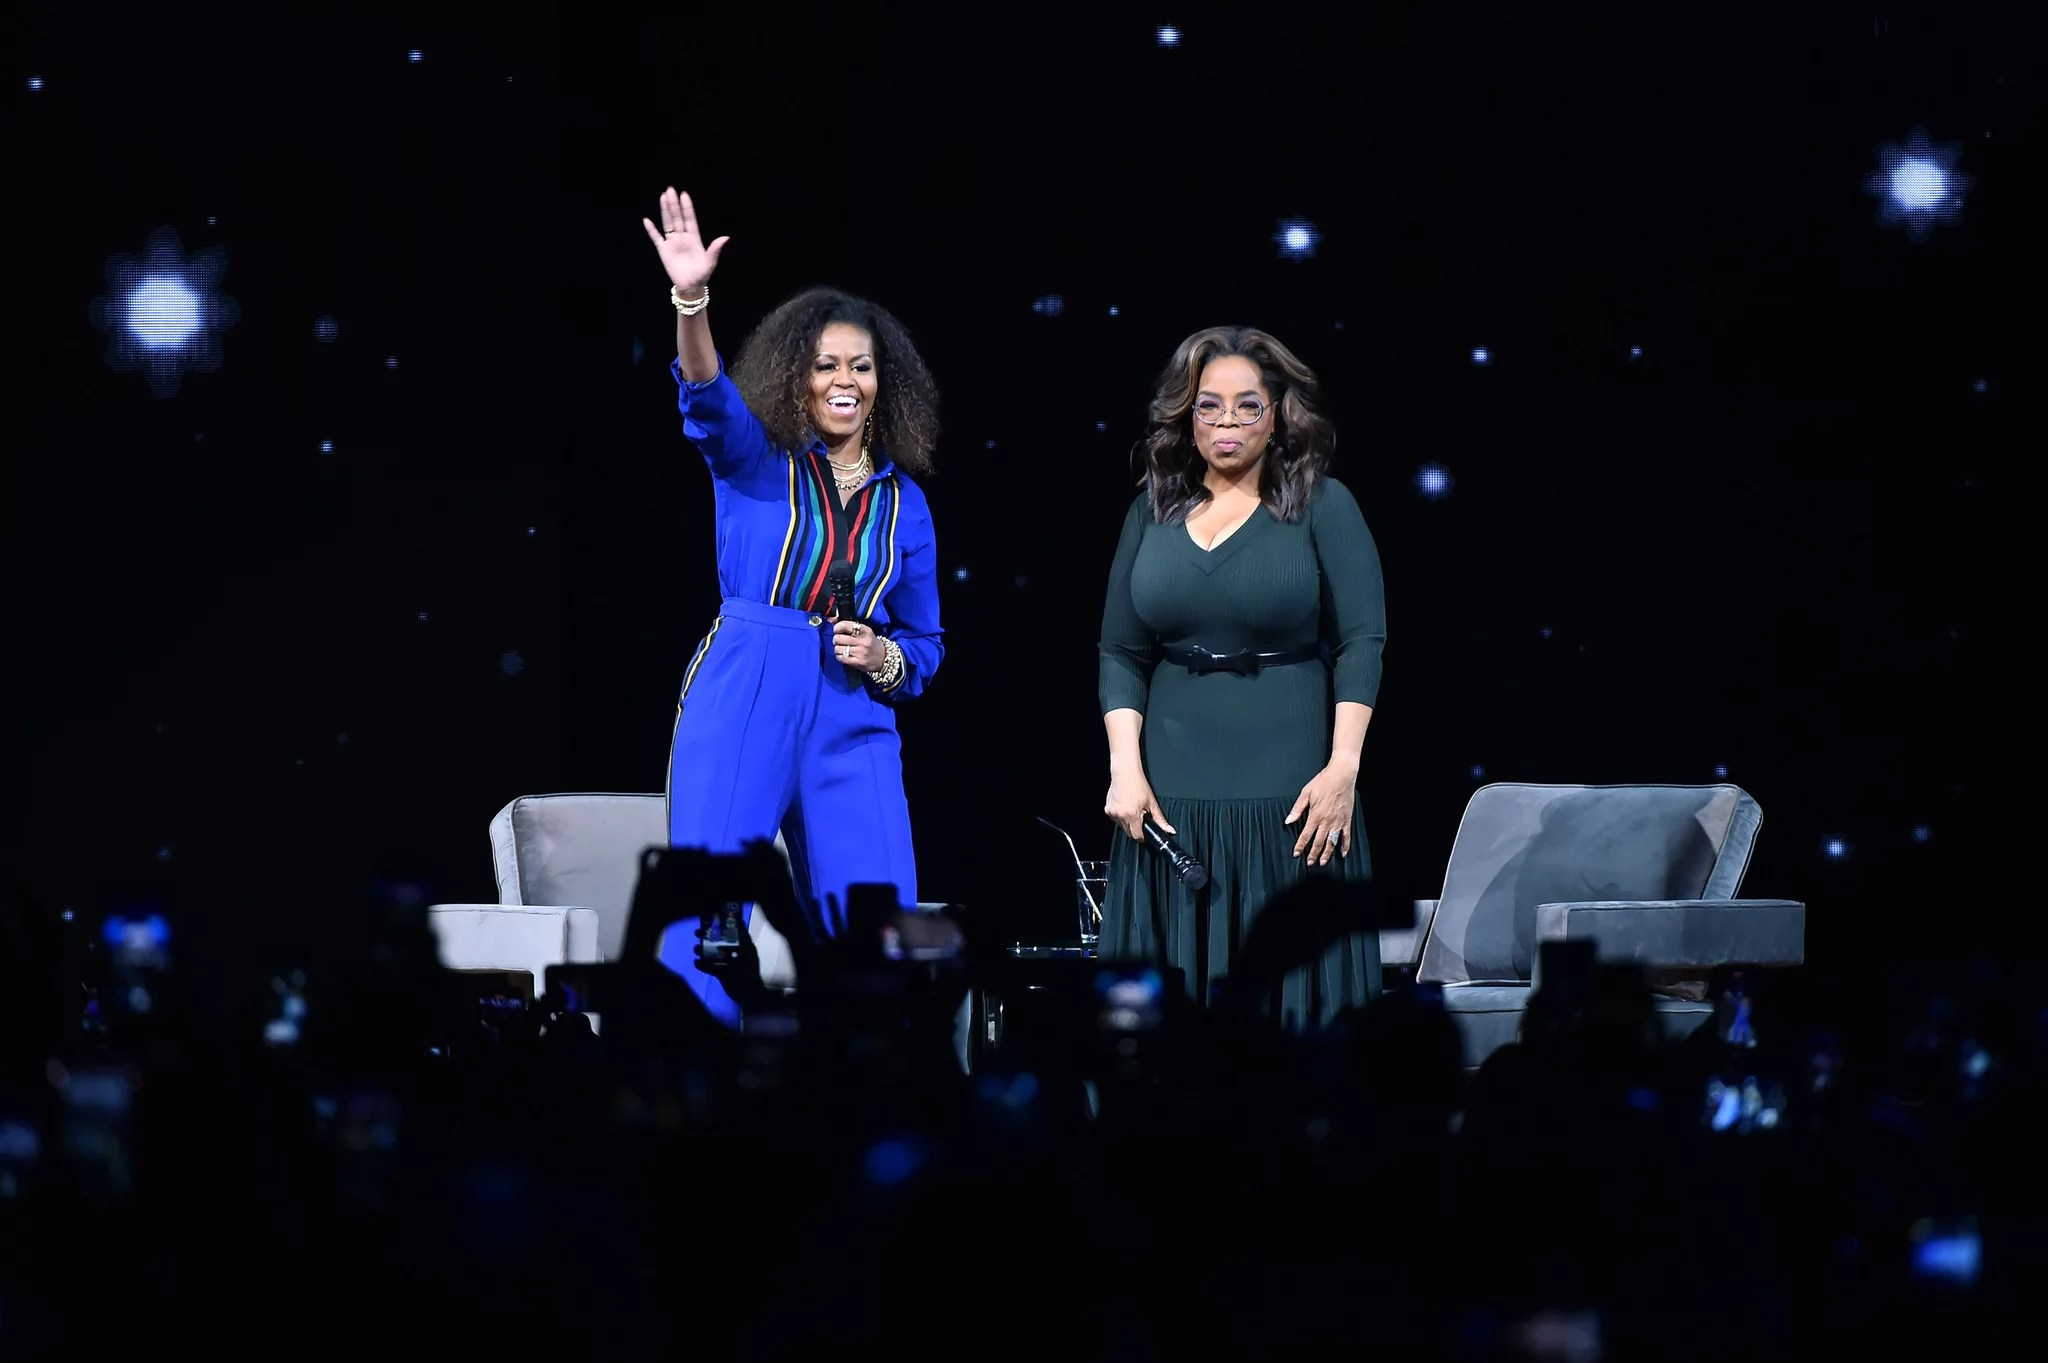 NEW YORK, NEW YORK - FEBRUARY 08: Michelle Obama and Oprah Winfrey during Oprah's 2020 Vision: Your Life in Focus Tour presented by WW (Weight Watchers Reimagined) at Barclays Center on February 08, 2020 in New York, New York. (Photo by Theo Wargo/Getty Images)